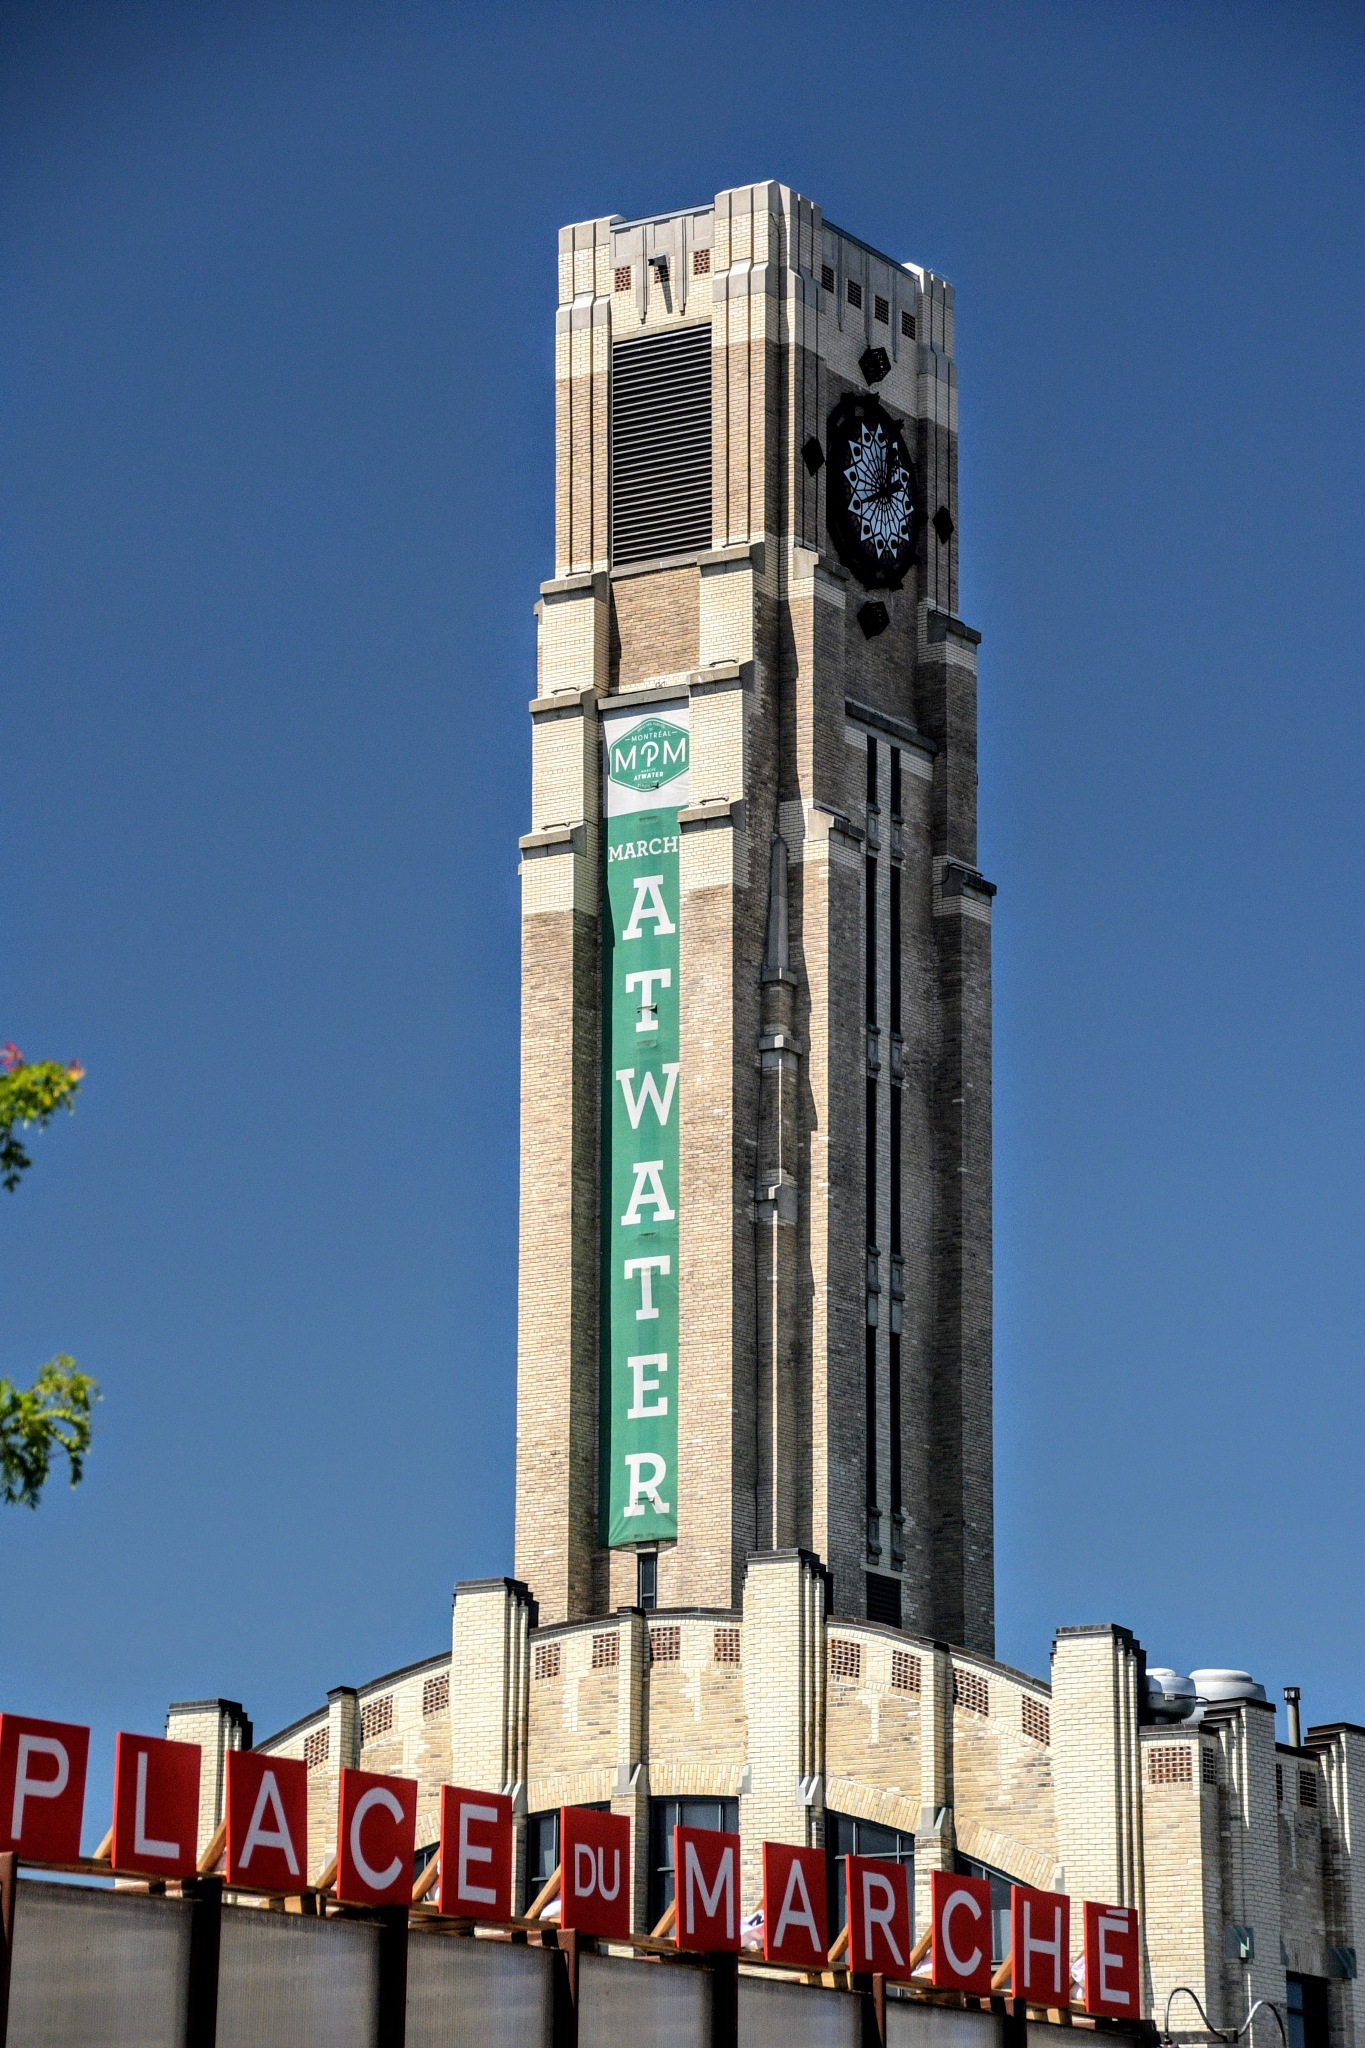 Clock Tower, Atwater Market, Montreal, Canada by Simon Dadouche